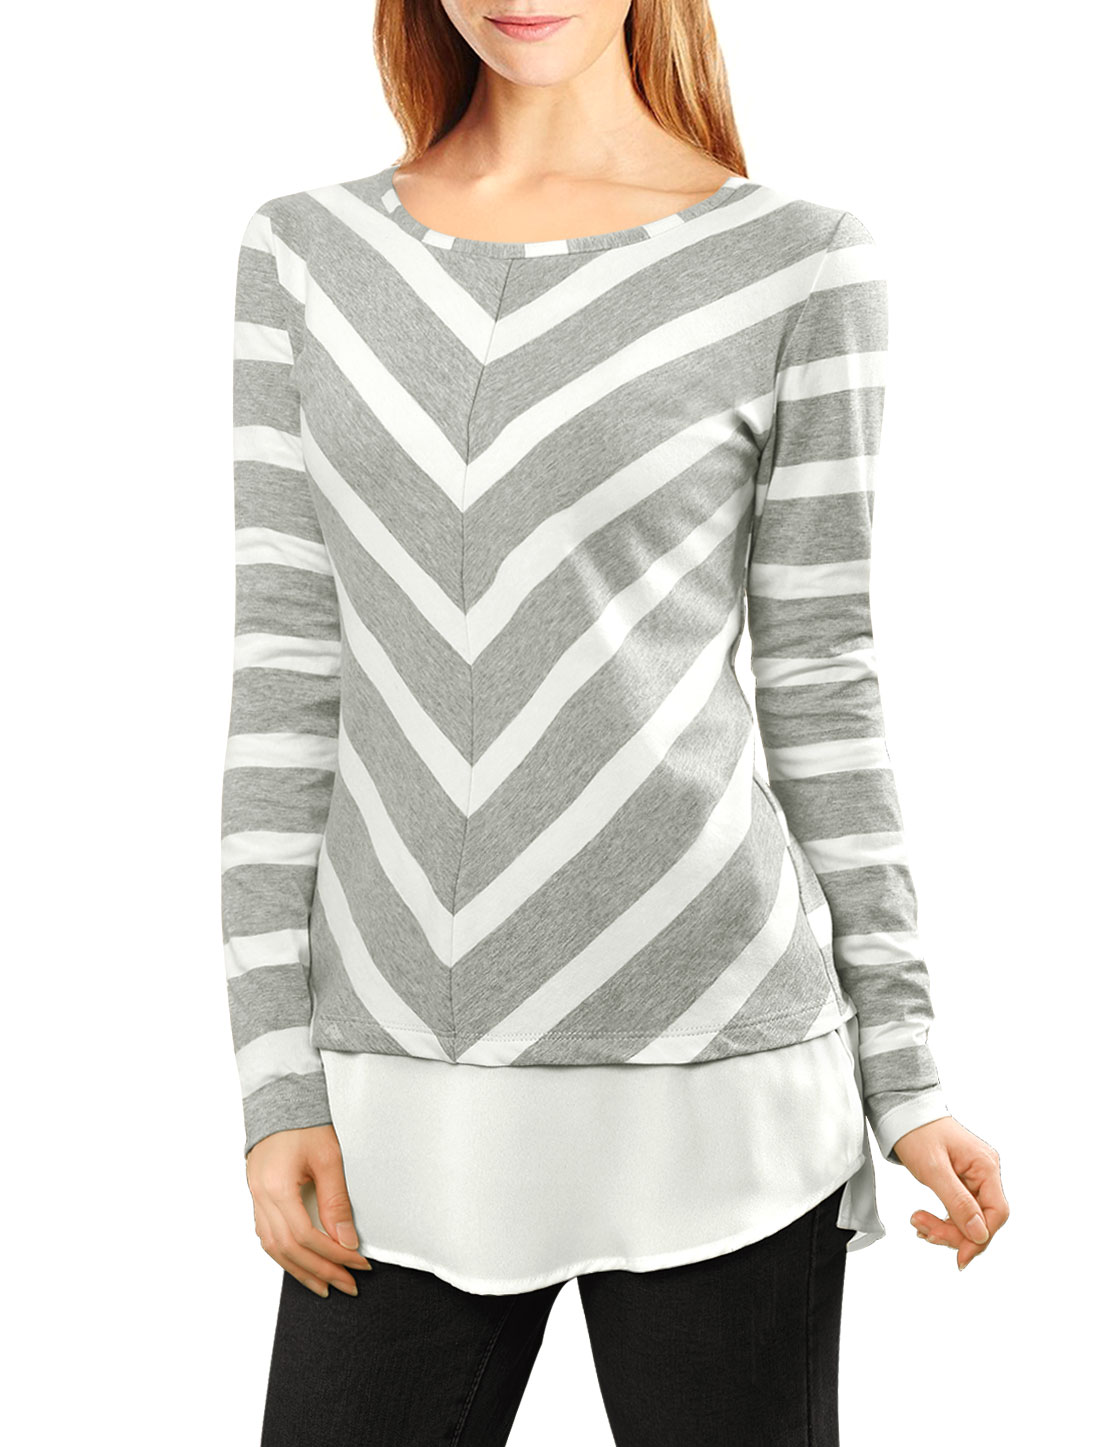 Women Layered Tunic Top in Striped and Chevron Print Gray S